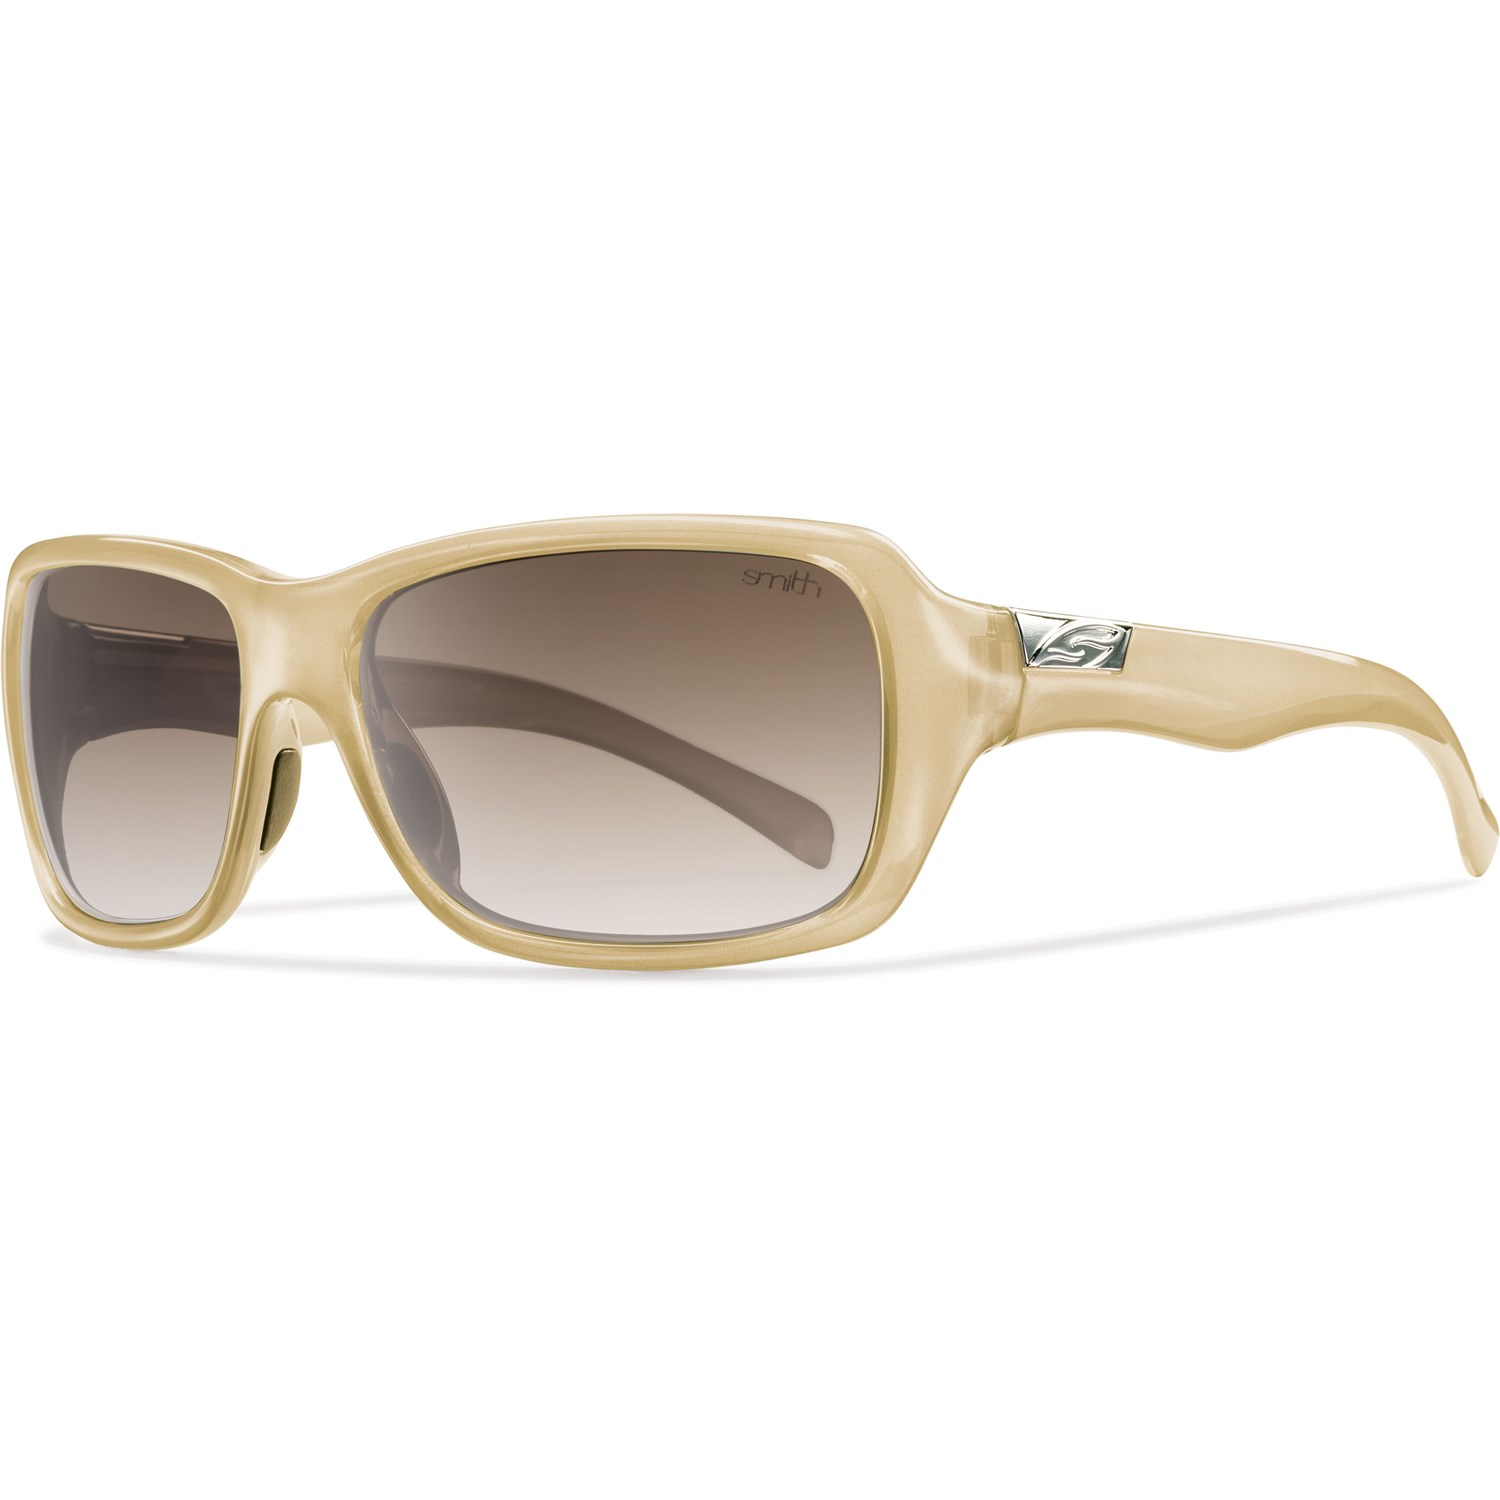 Women S Polarized Sunglasses Small Face Www Panaust Com Au